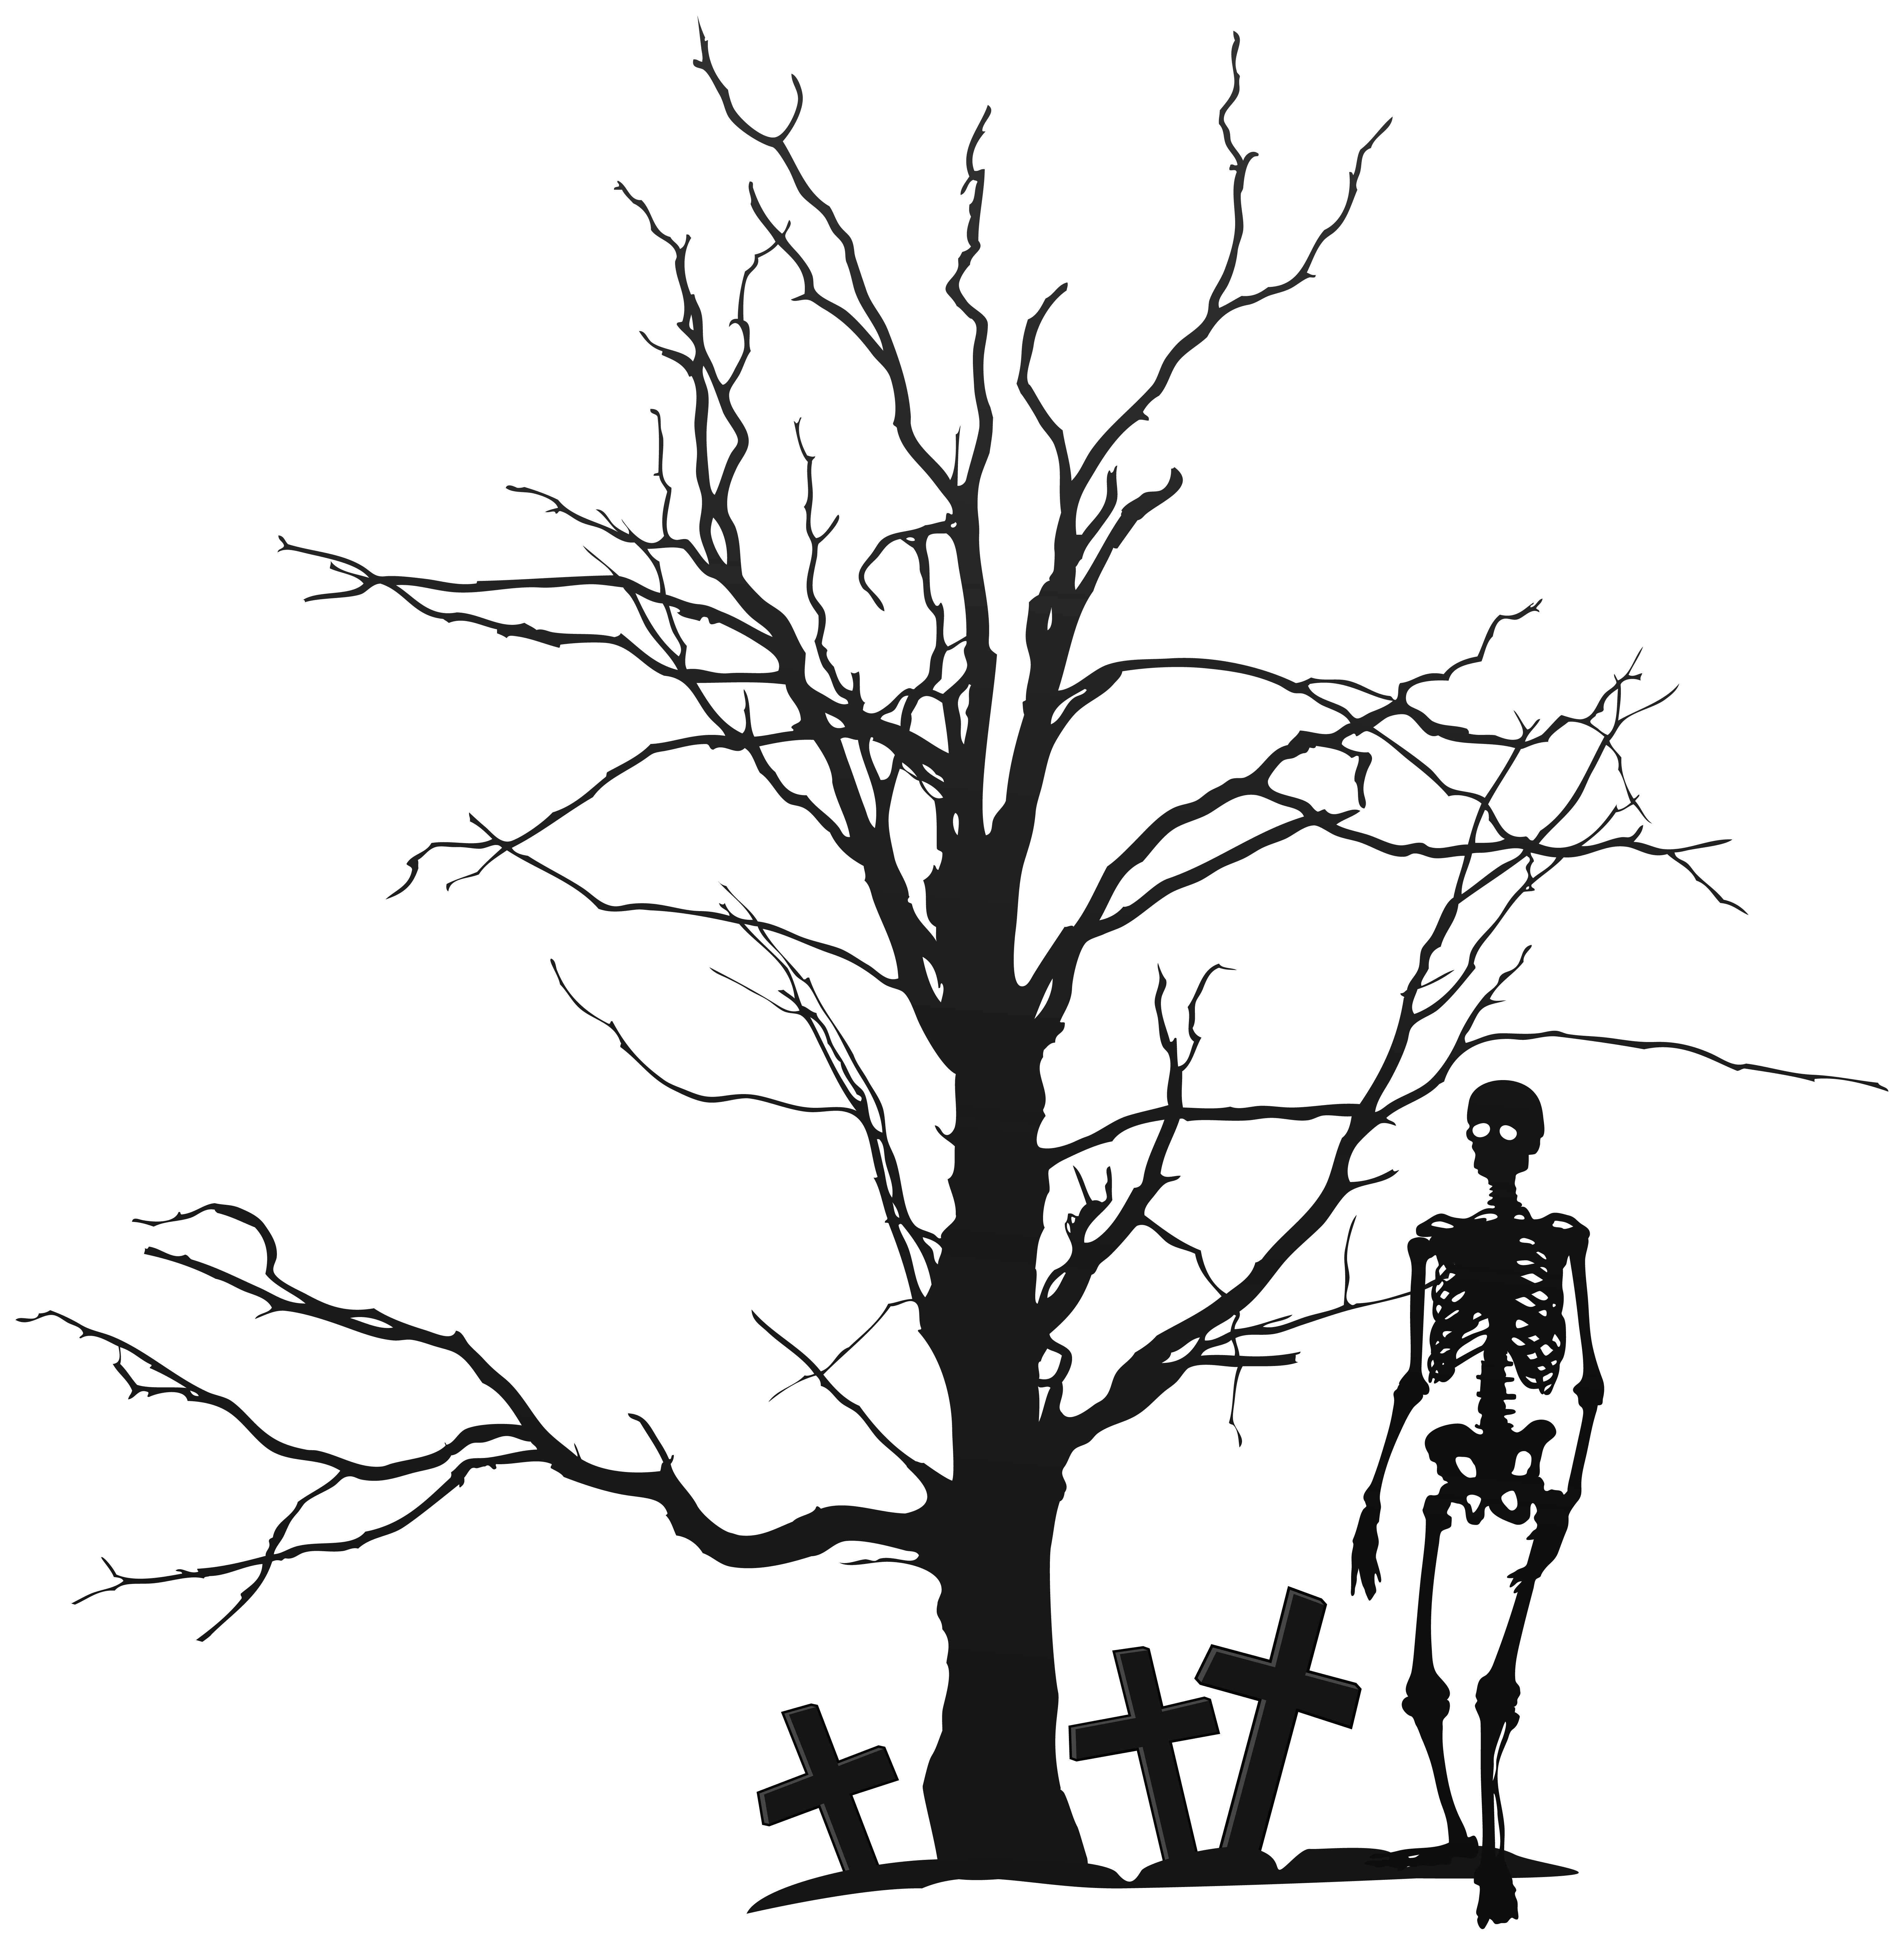 Human tree clipart clip art library library The Halloween Tree Clip art - Halloween Tree and Skeleton PNG ... clip art library library